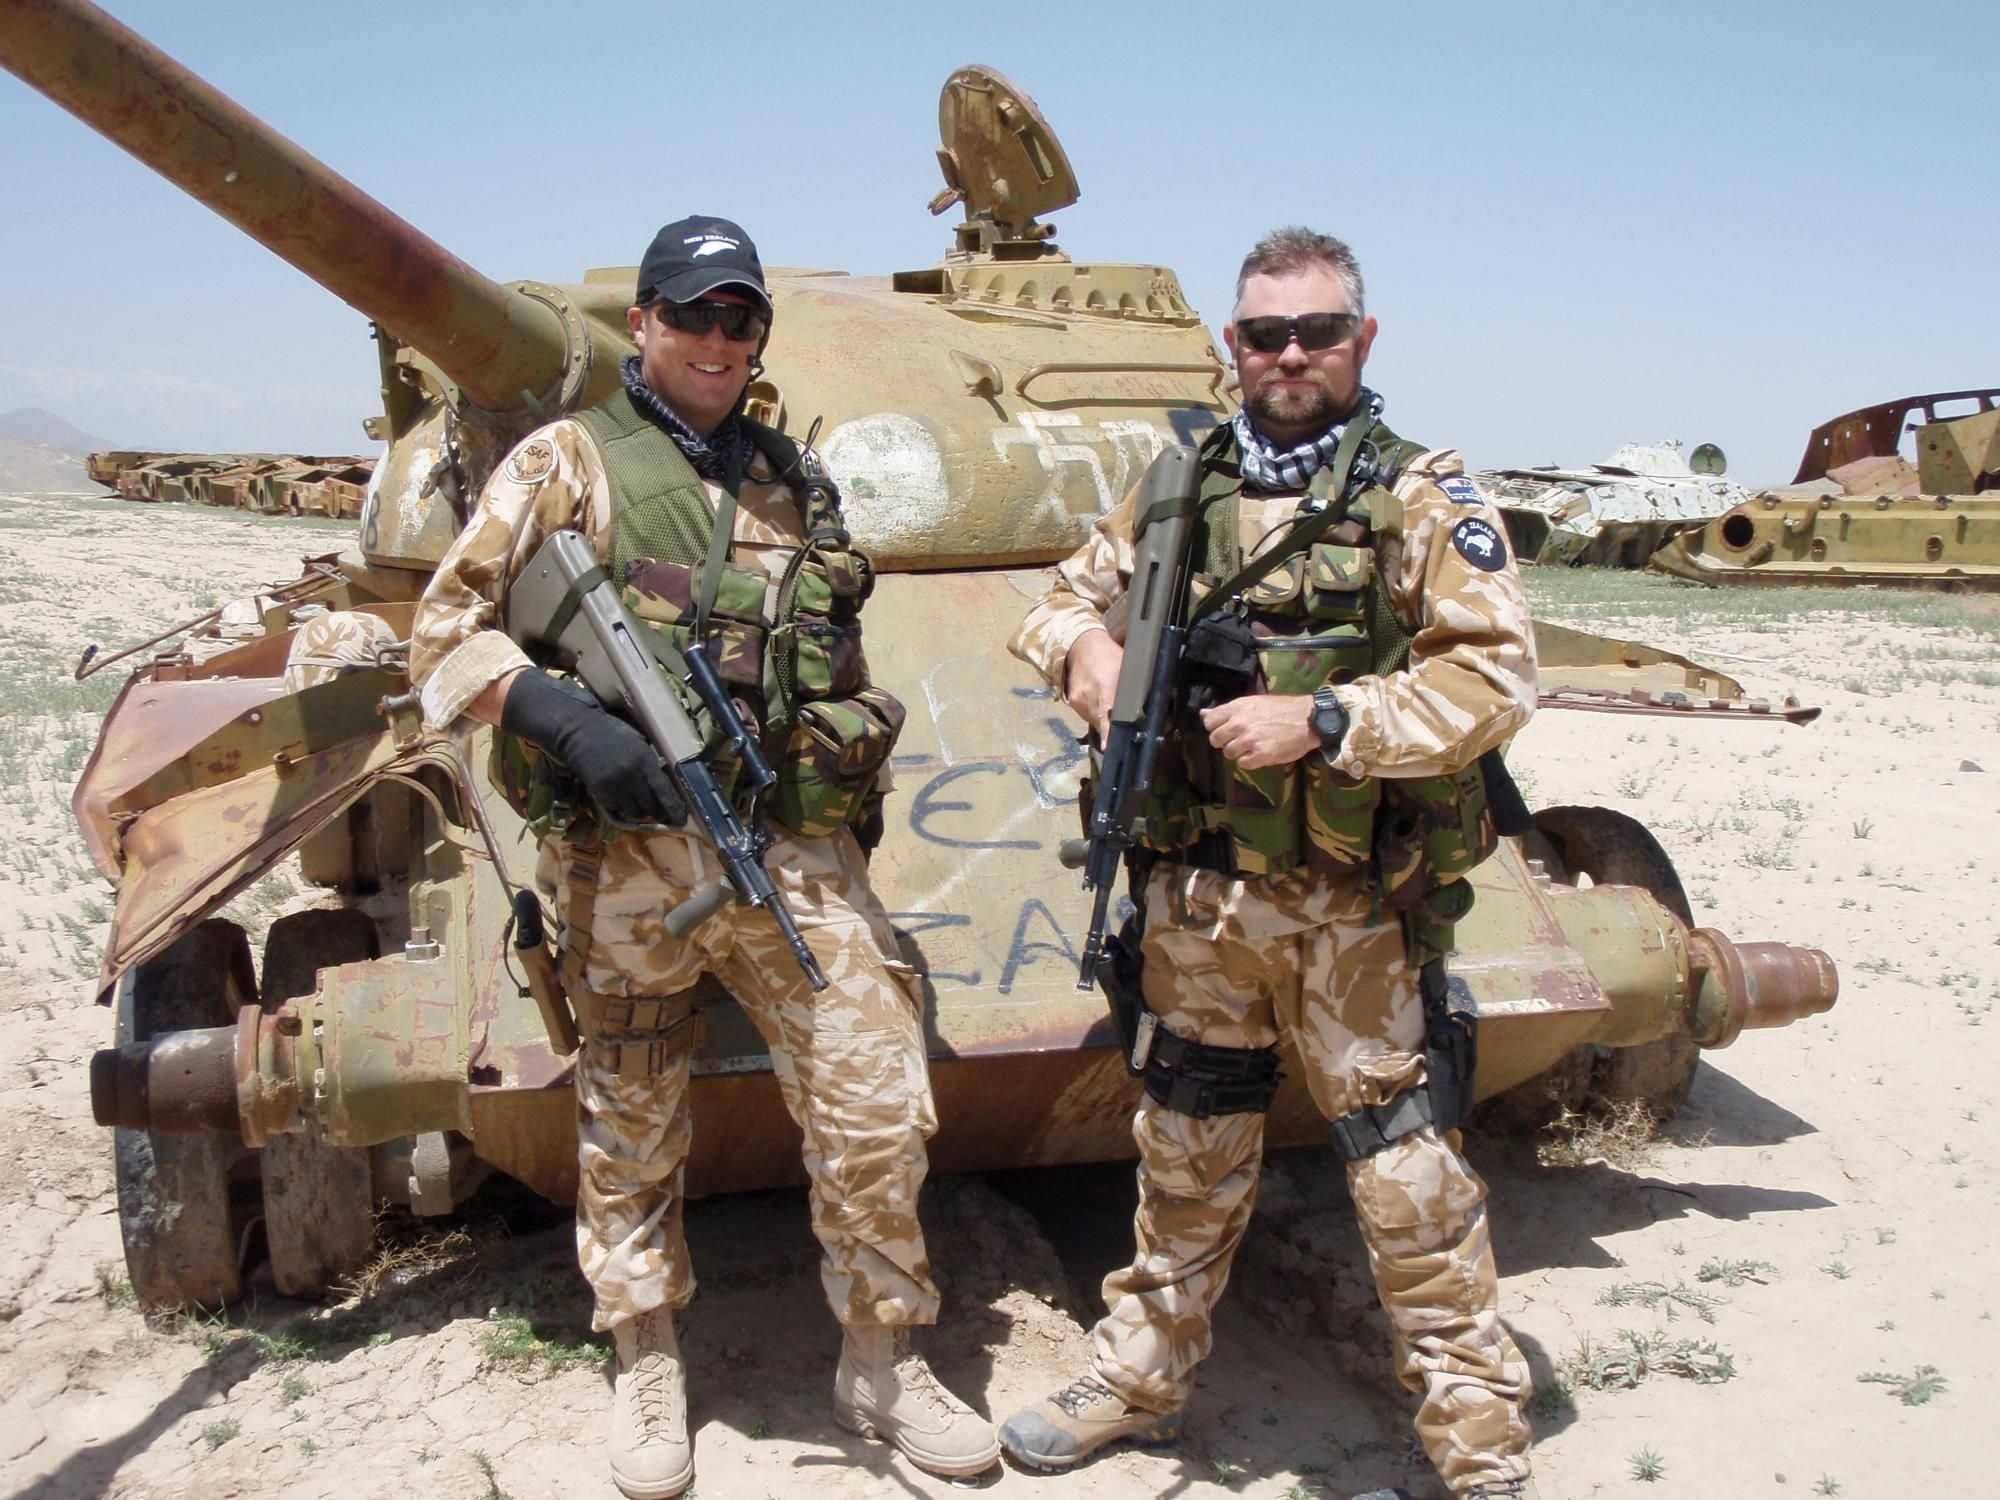 Image Detail For Afghanistan War Taliban Afghanistan War Military Heroes Military Special Forces